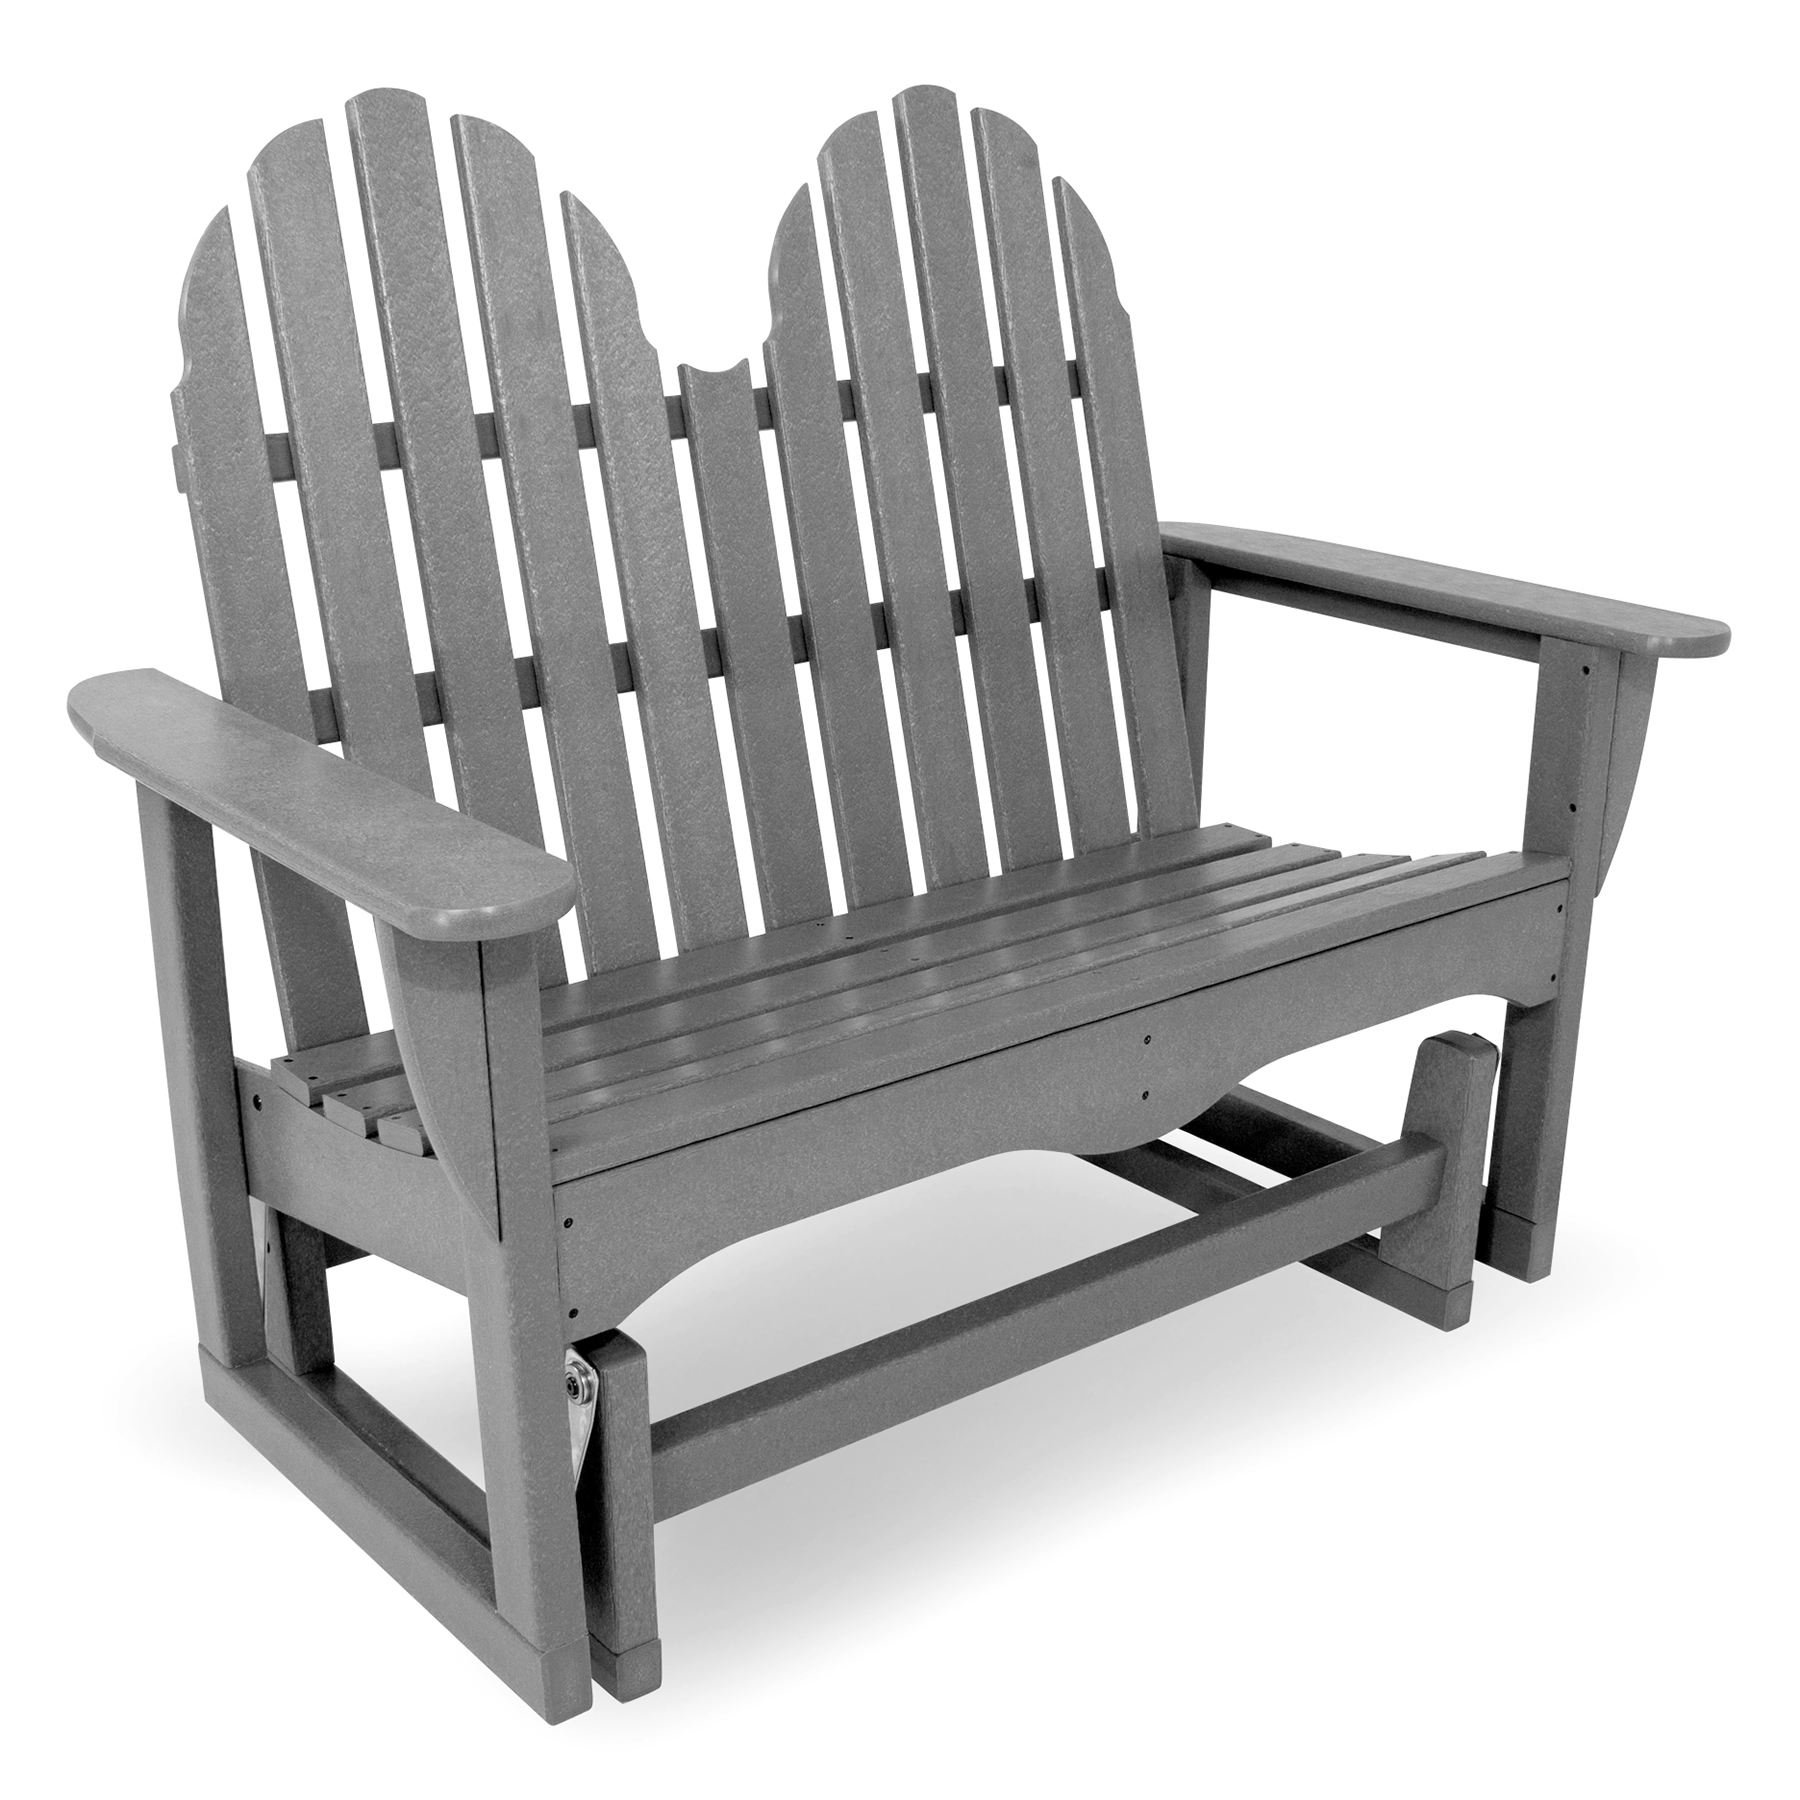 POLYWOOD Classic Adirondack 48 in Glider Bench Classic